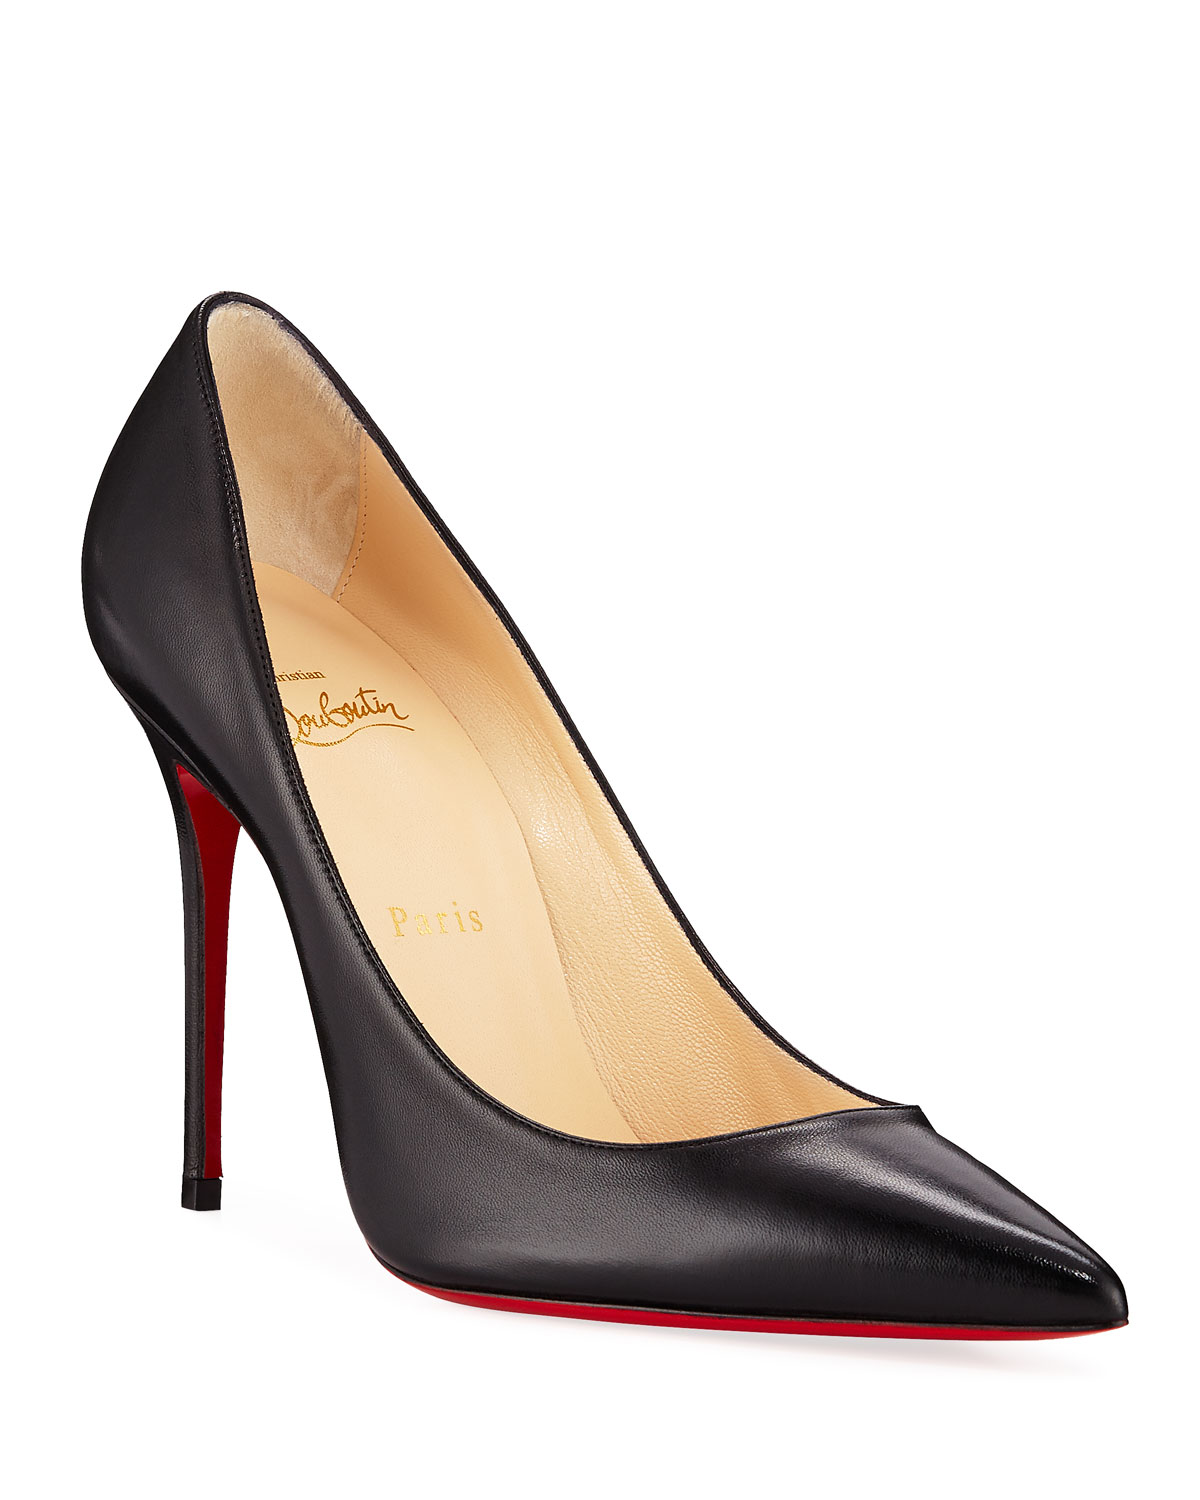 Kate Red Sole Pumps, Black